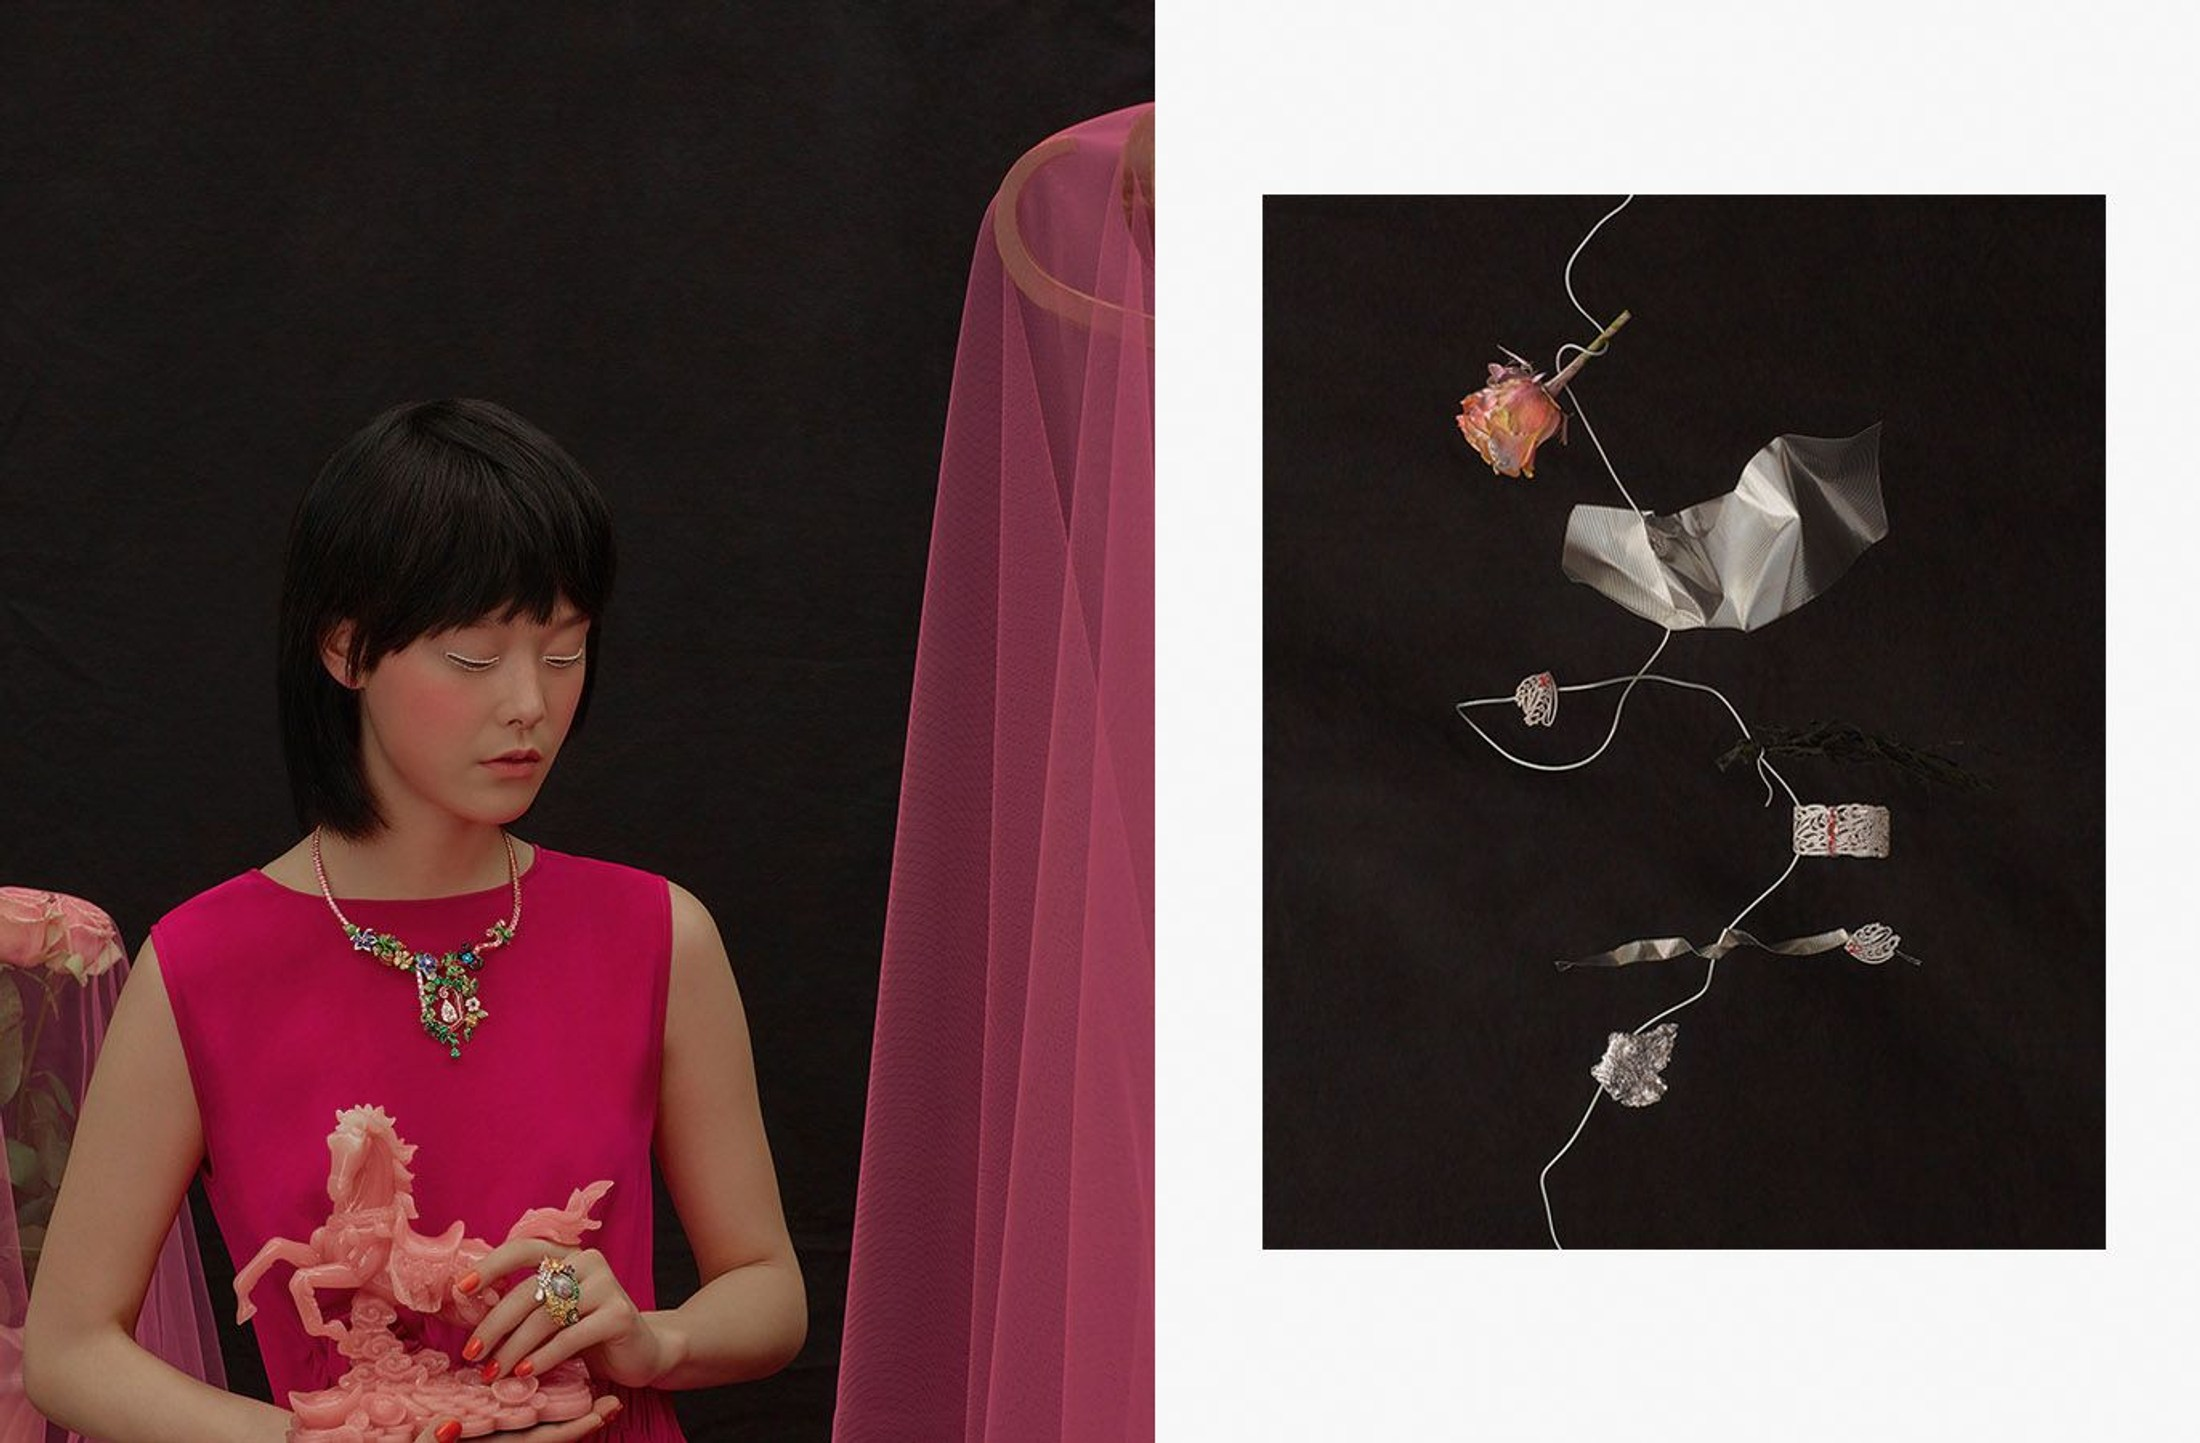 nhu xuan hua marie claire editorial photography fashion jewellery